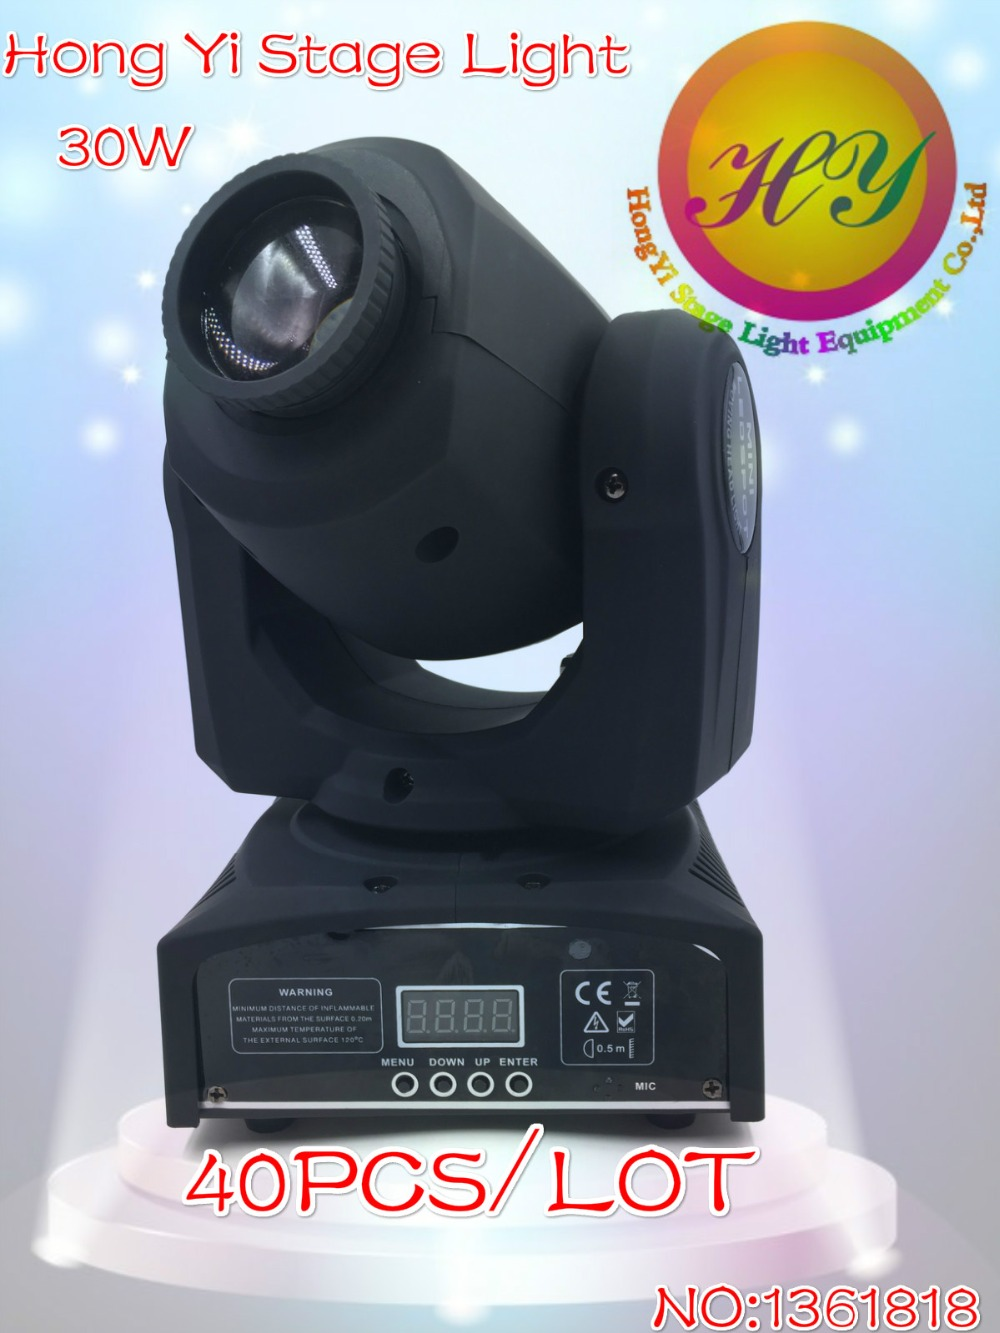 40PCS DMX512 30W LED gobo Moving Head Lighting spot lighting dj set gobo christmas lights dj light projector for bar party event(China (Mainland))